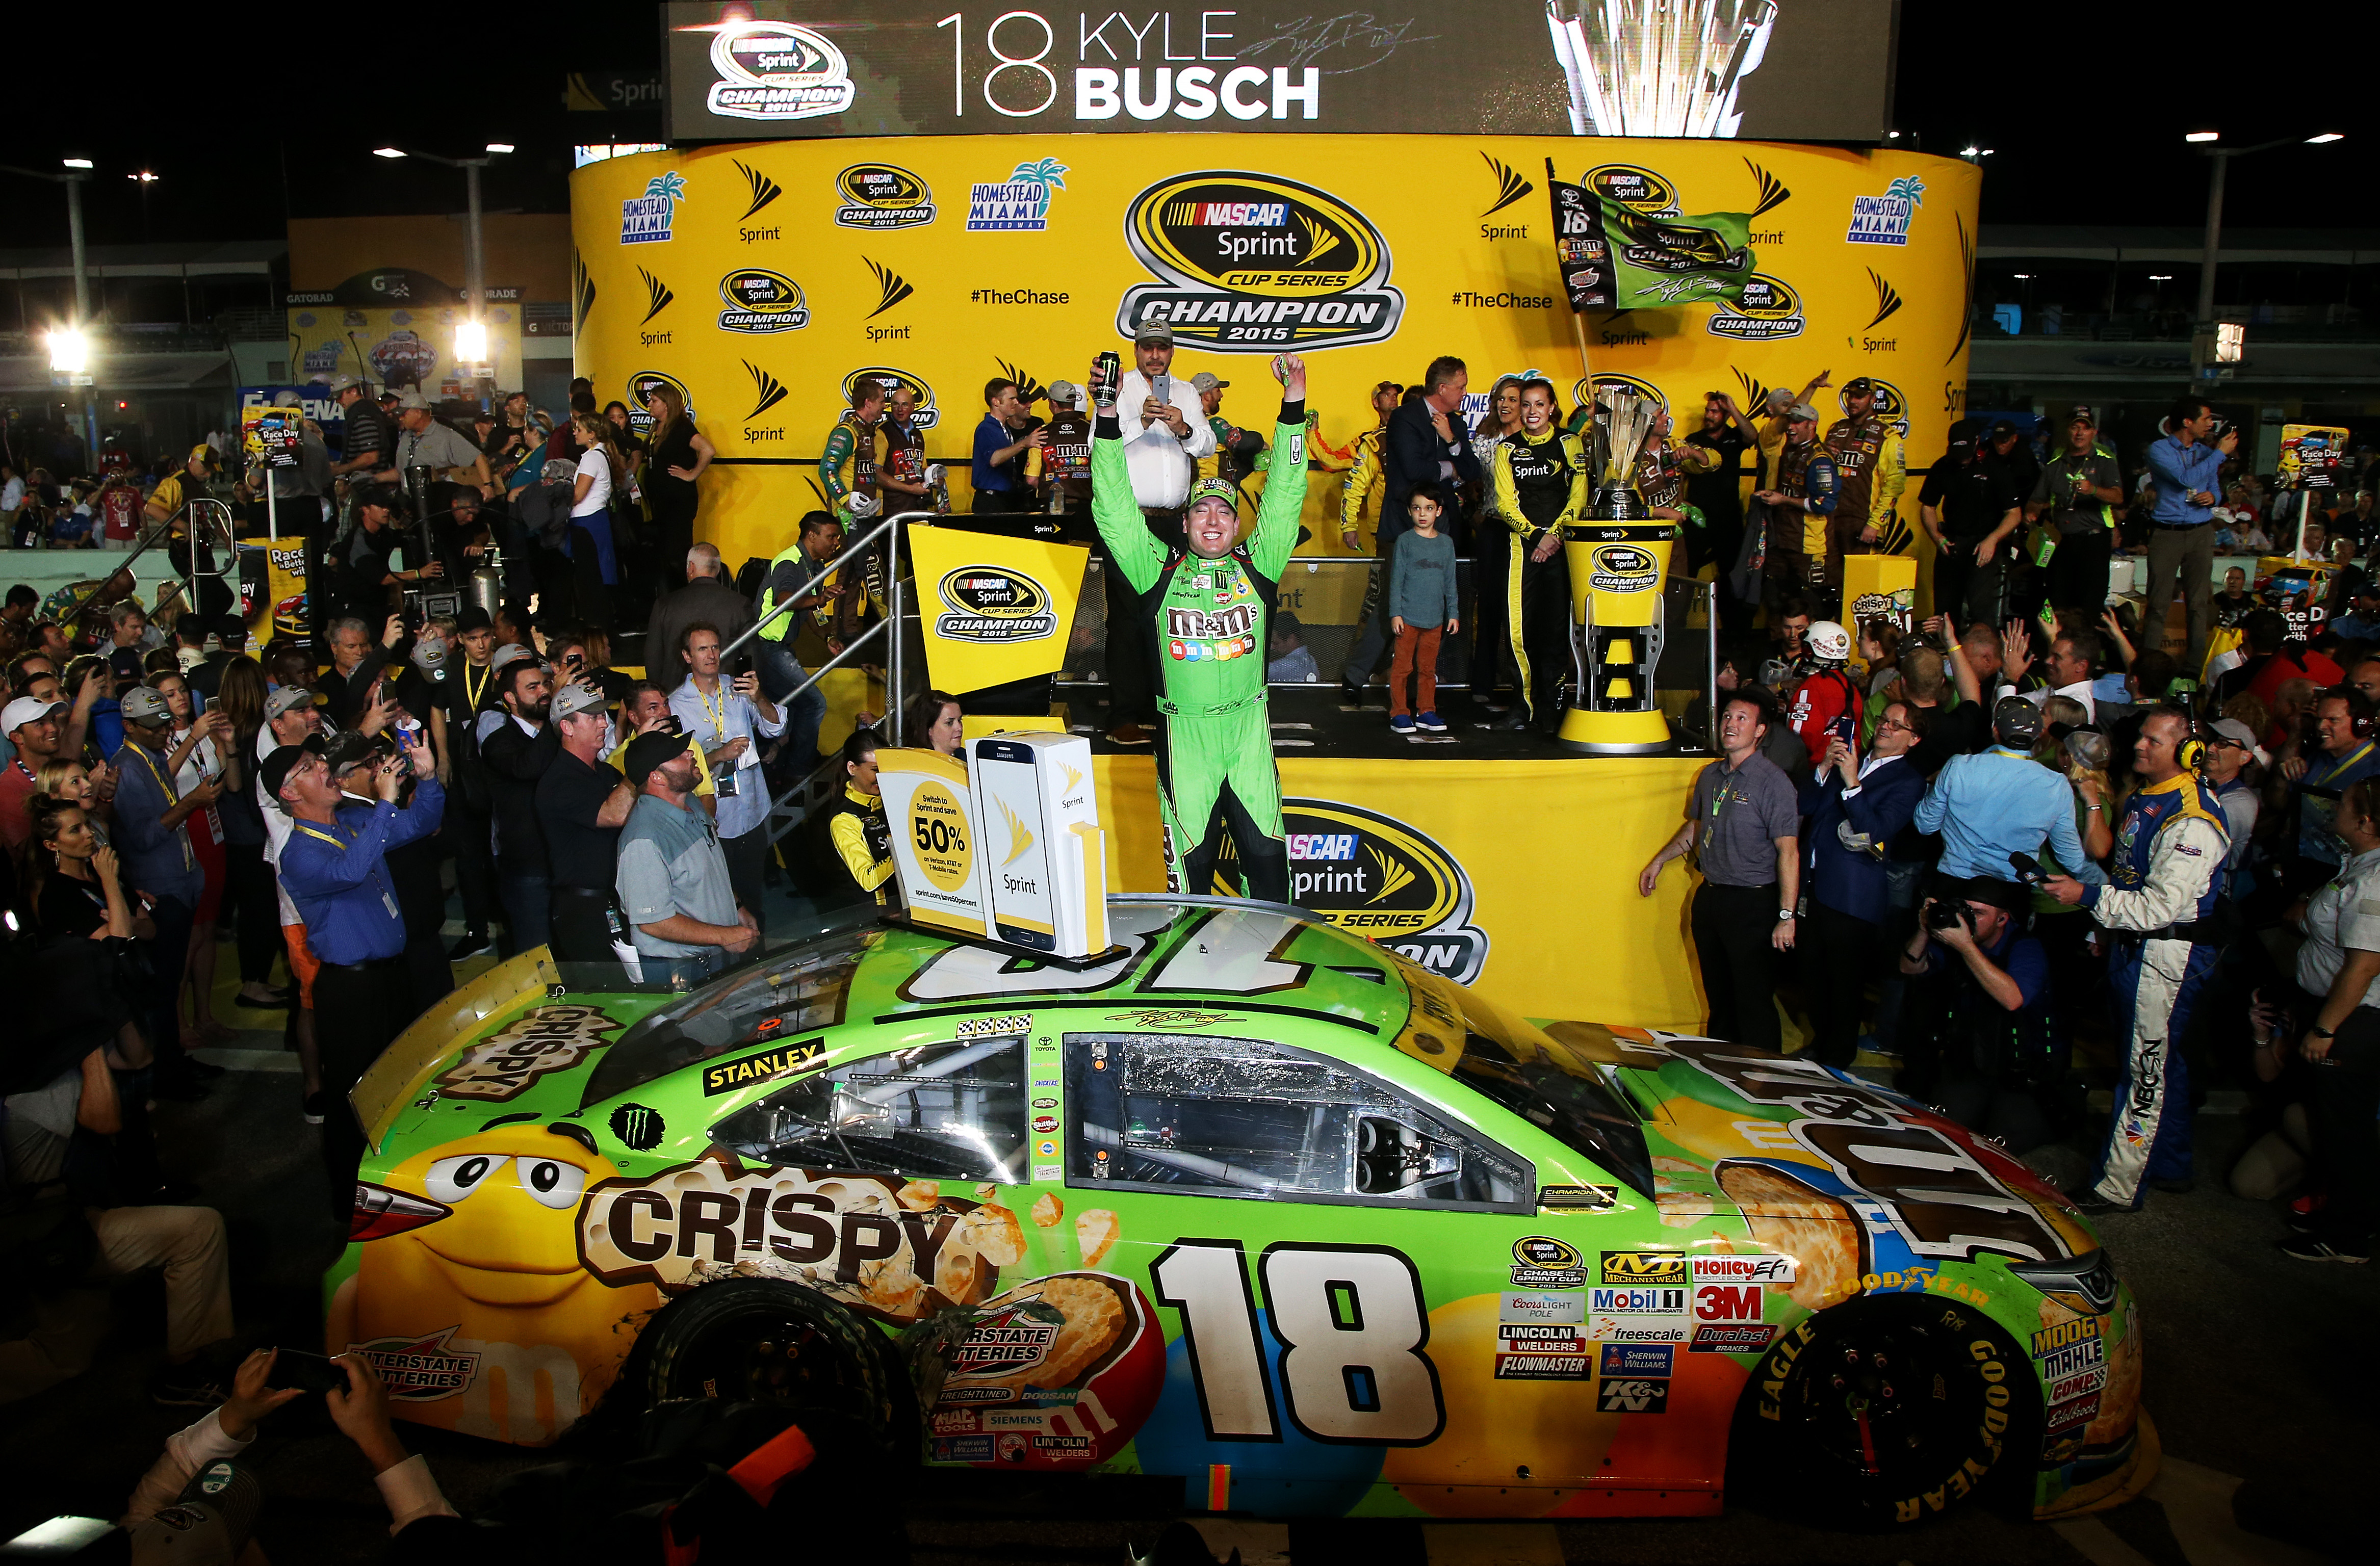 Kyle Busch Motorsports >> Kyle Busch Wins First Sprint Cup Championship at Homestead-Miami Speedway – RacingJunk News